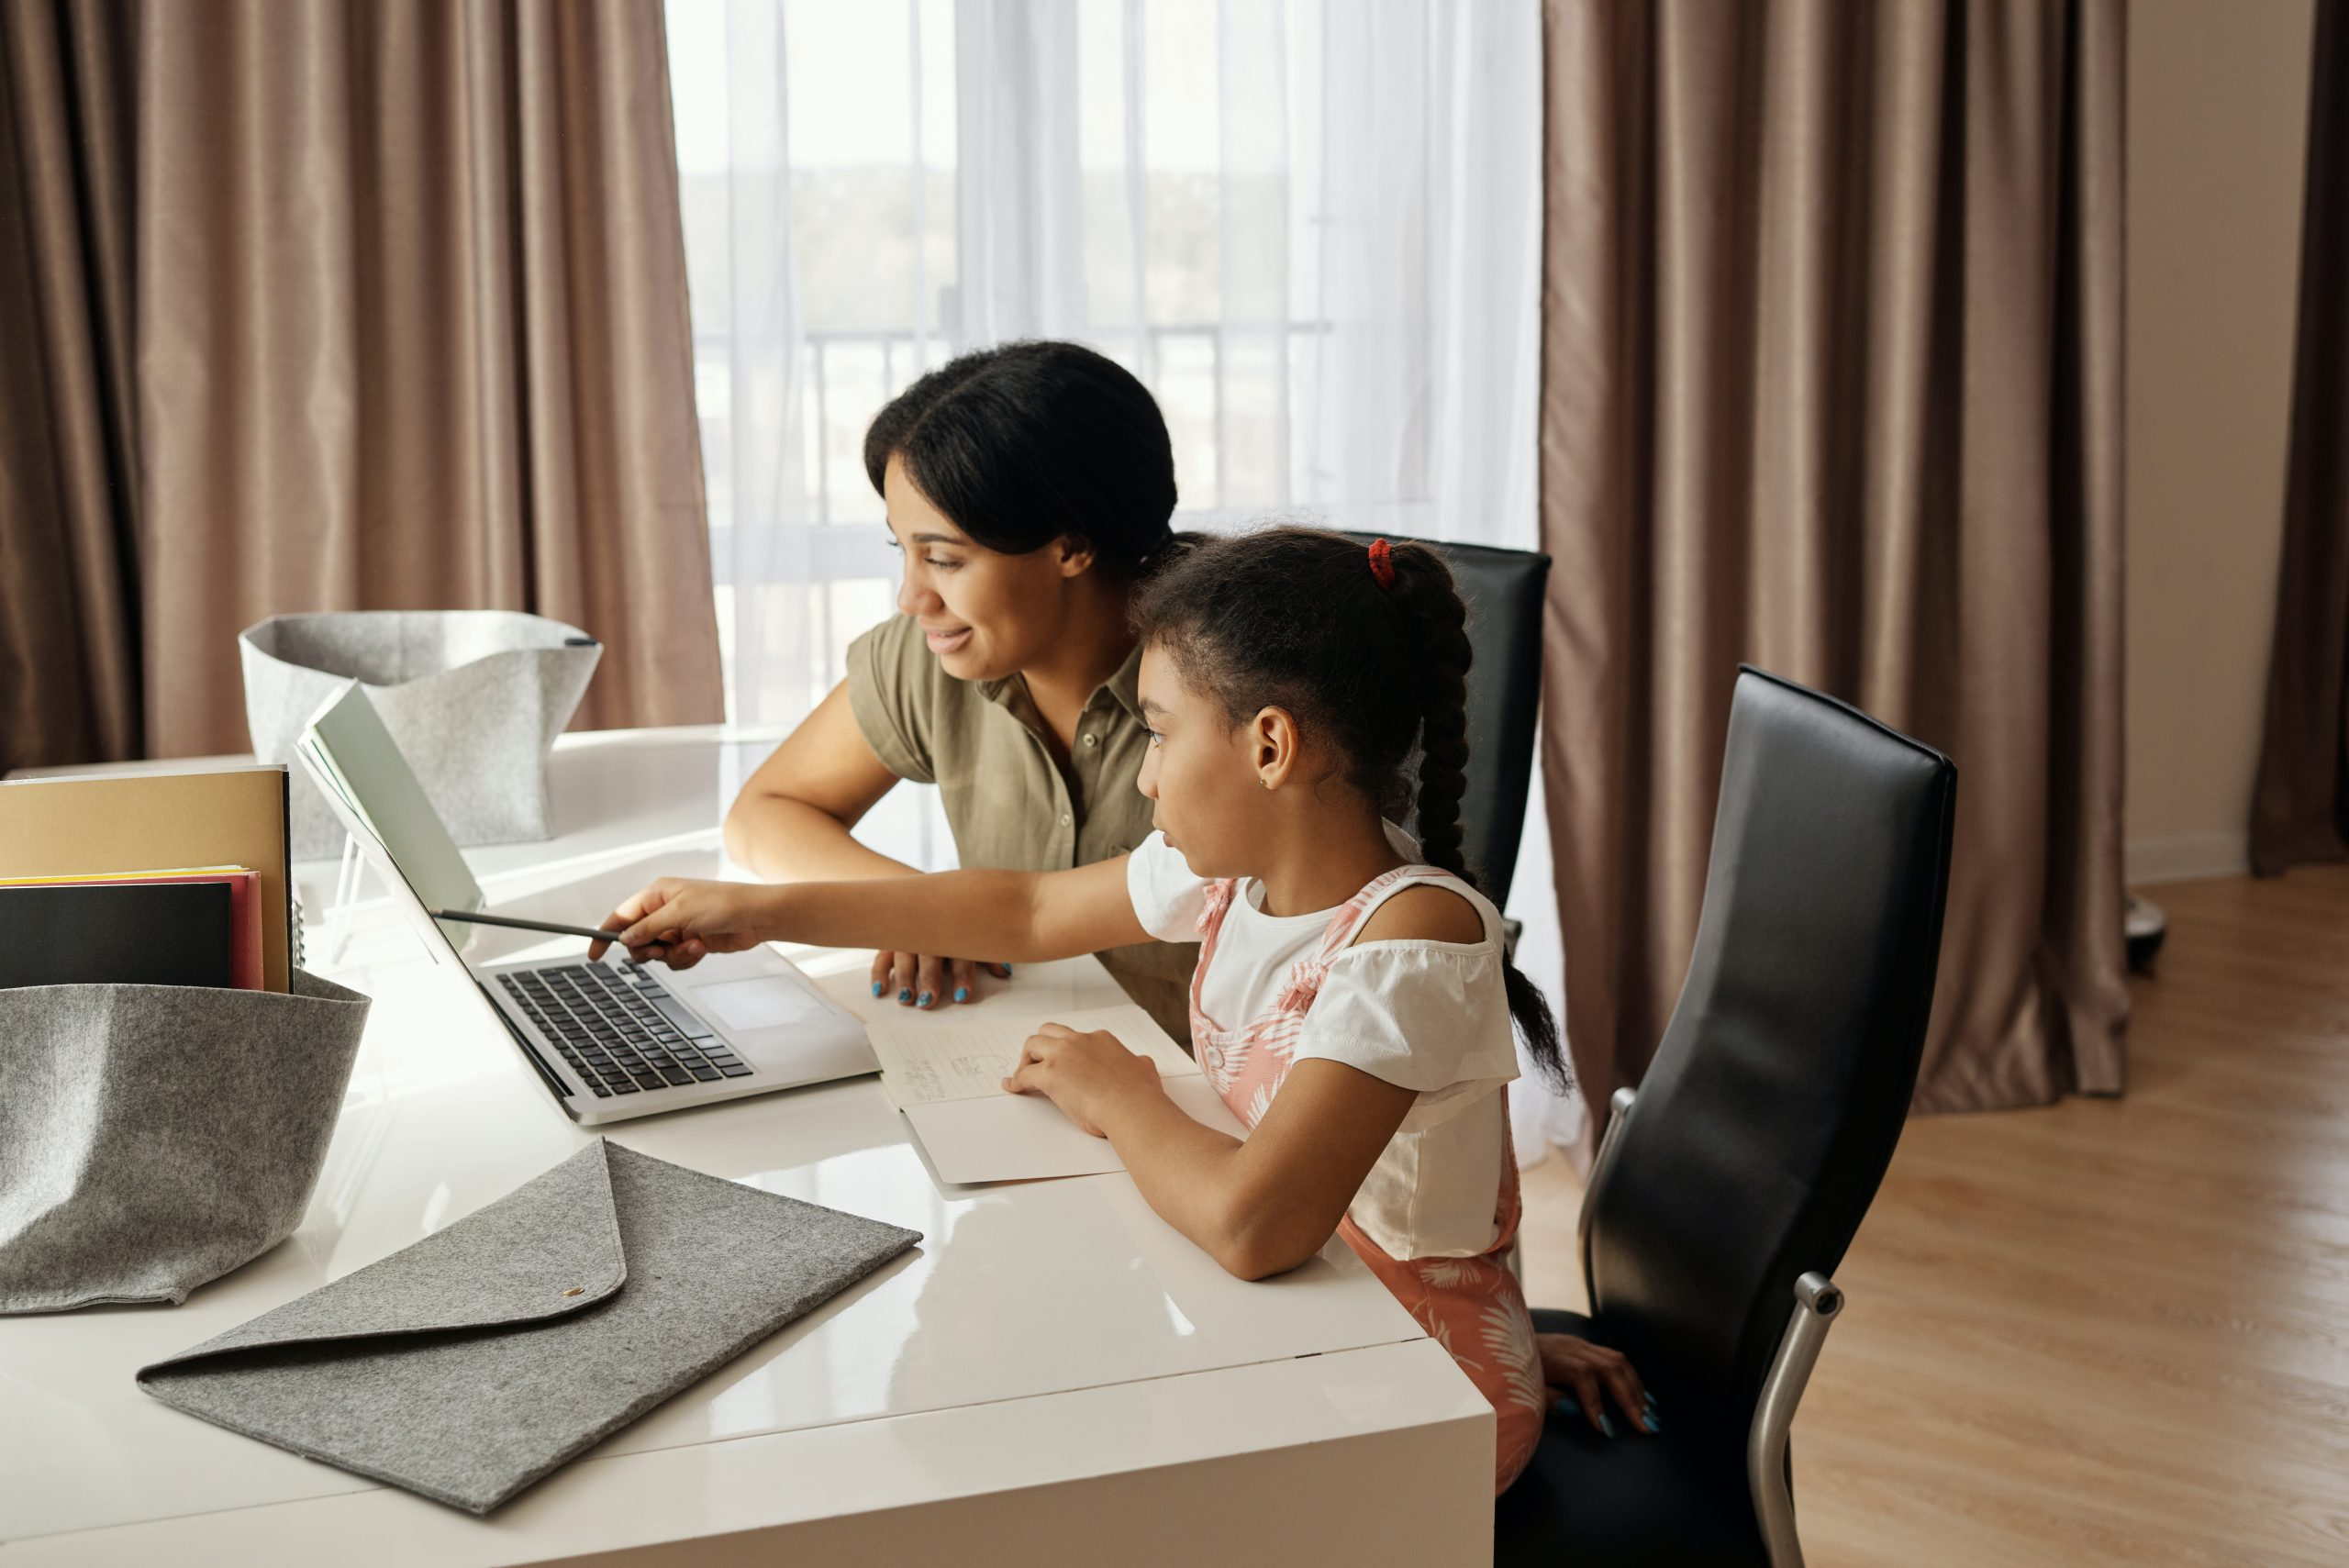 5 Tips to Make Online Classes Work for Your Child